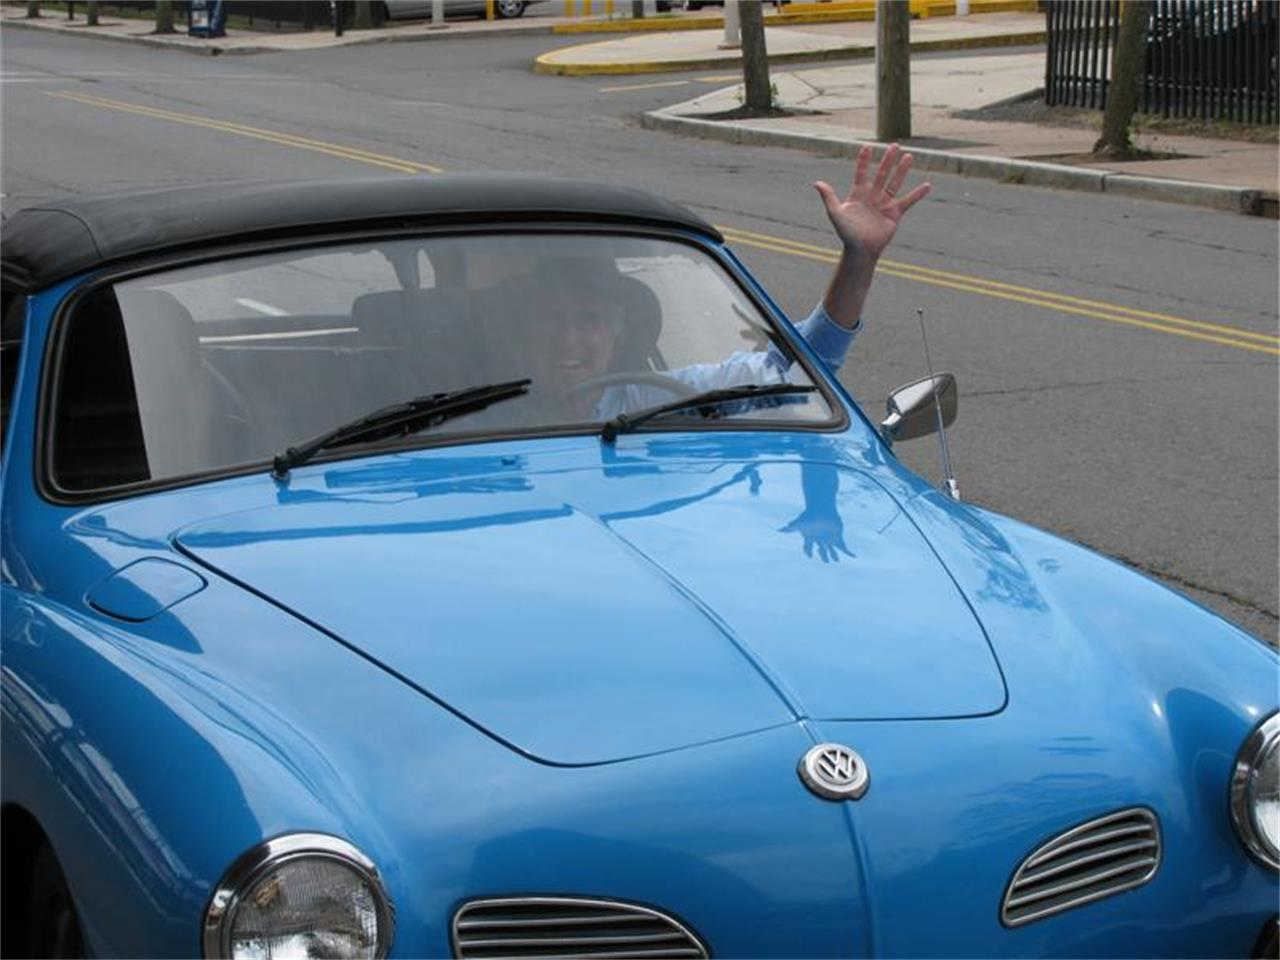 Large Picture of '73 Volkswagen Karmann Ghia located in Naples Florida - $12,500.00 Offered by a Private Seller - EV9I